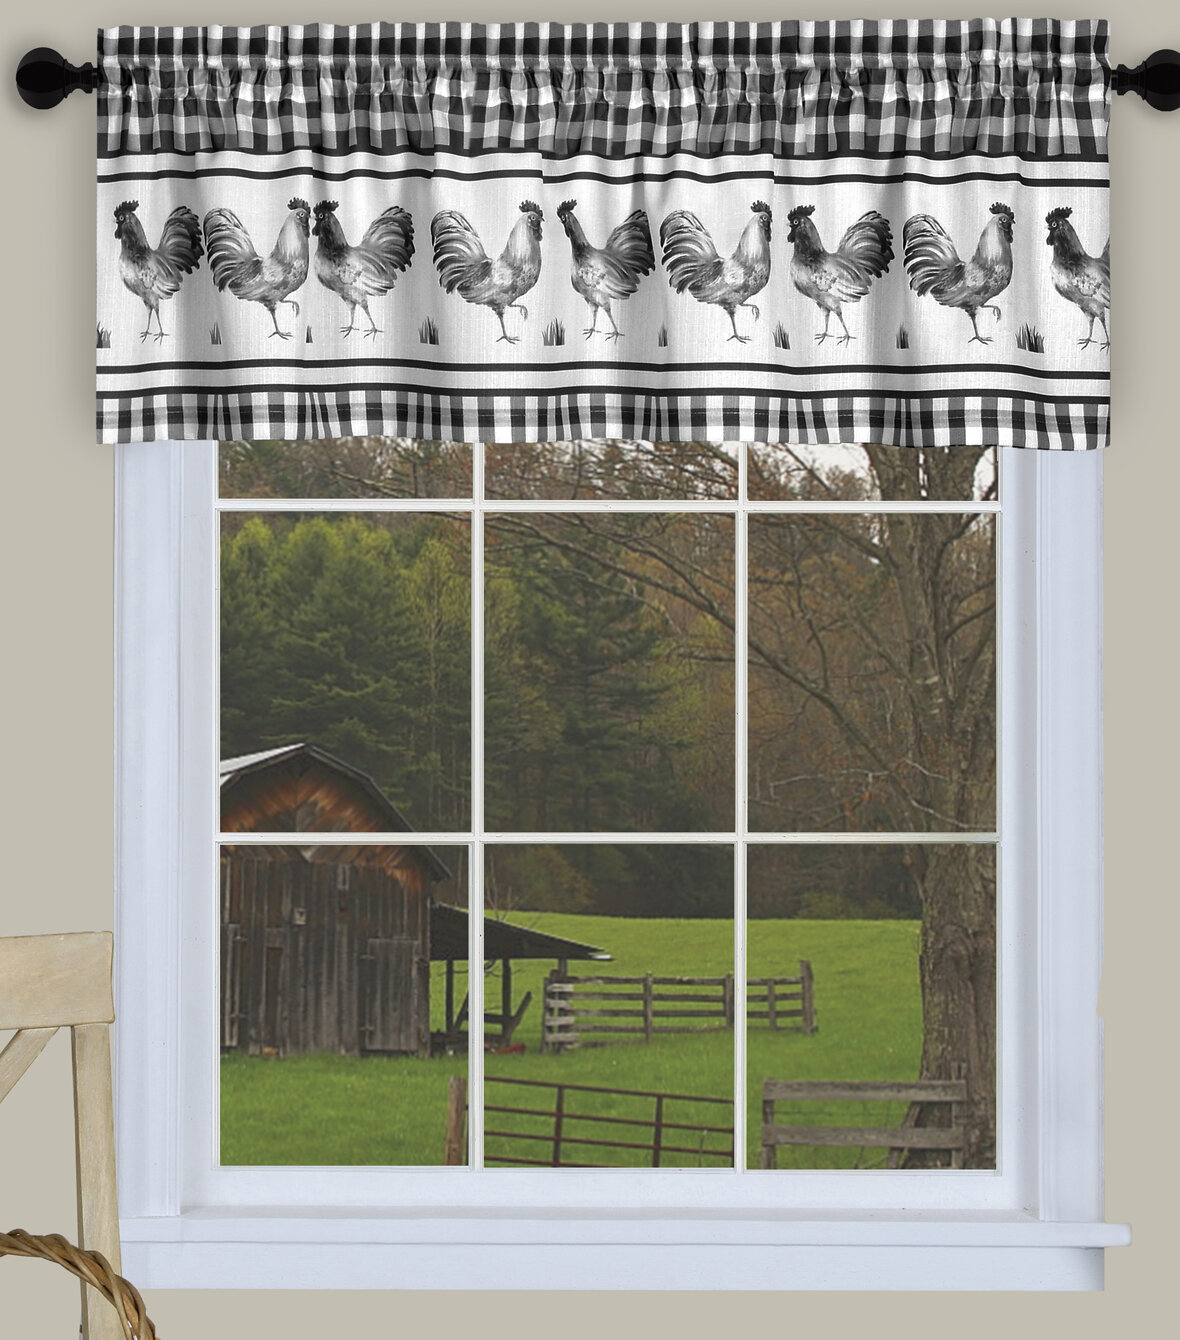 "Deraps 58"" Window Valance Regarding Barnyard Buffalo Check Rooster Window Valances (View 14 of 20)"